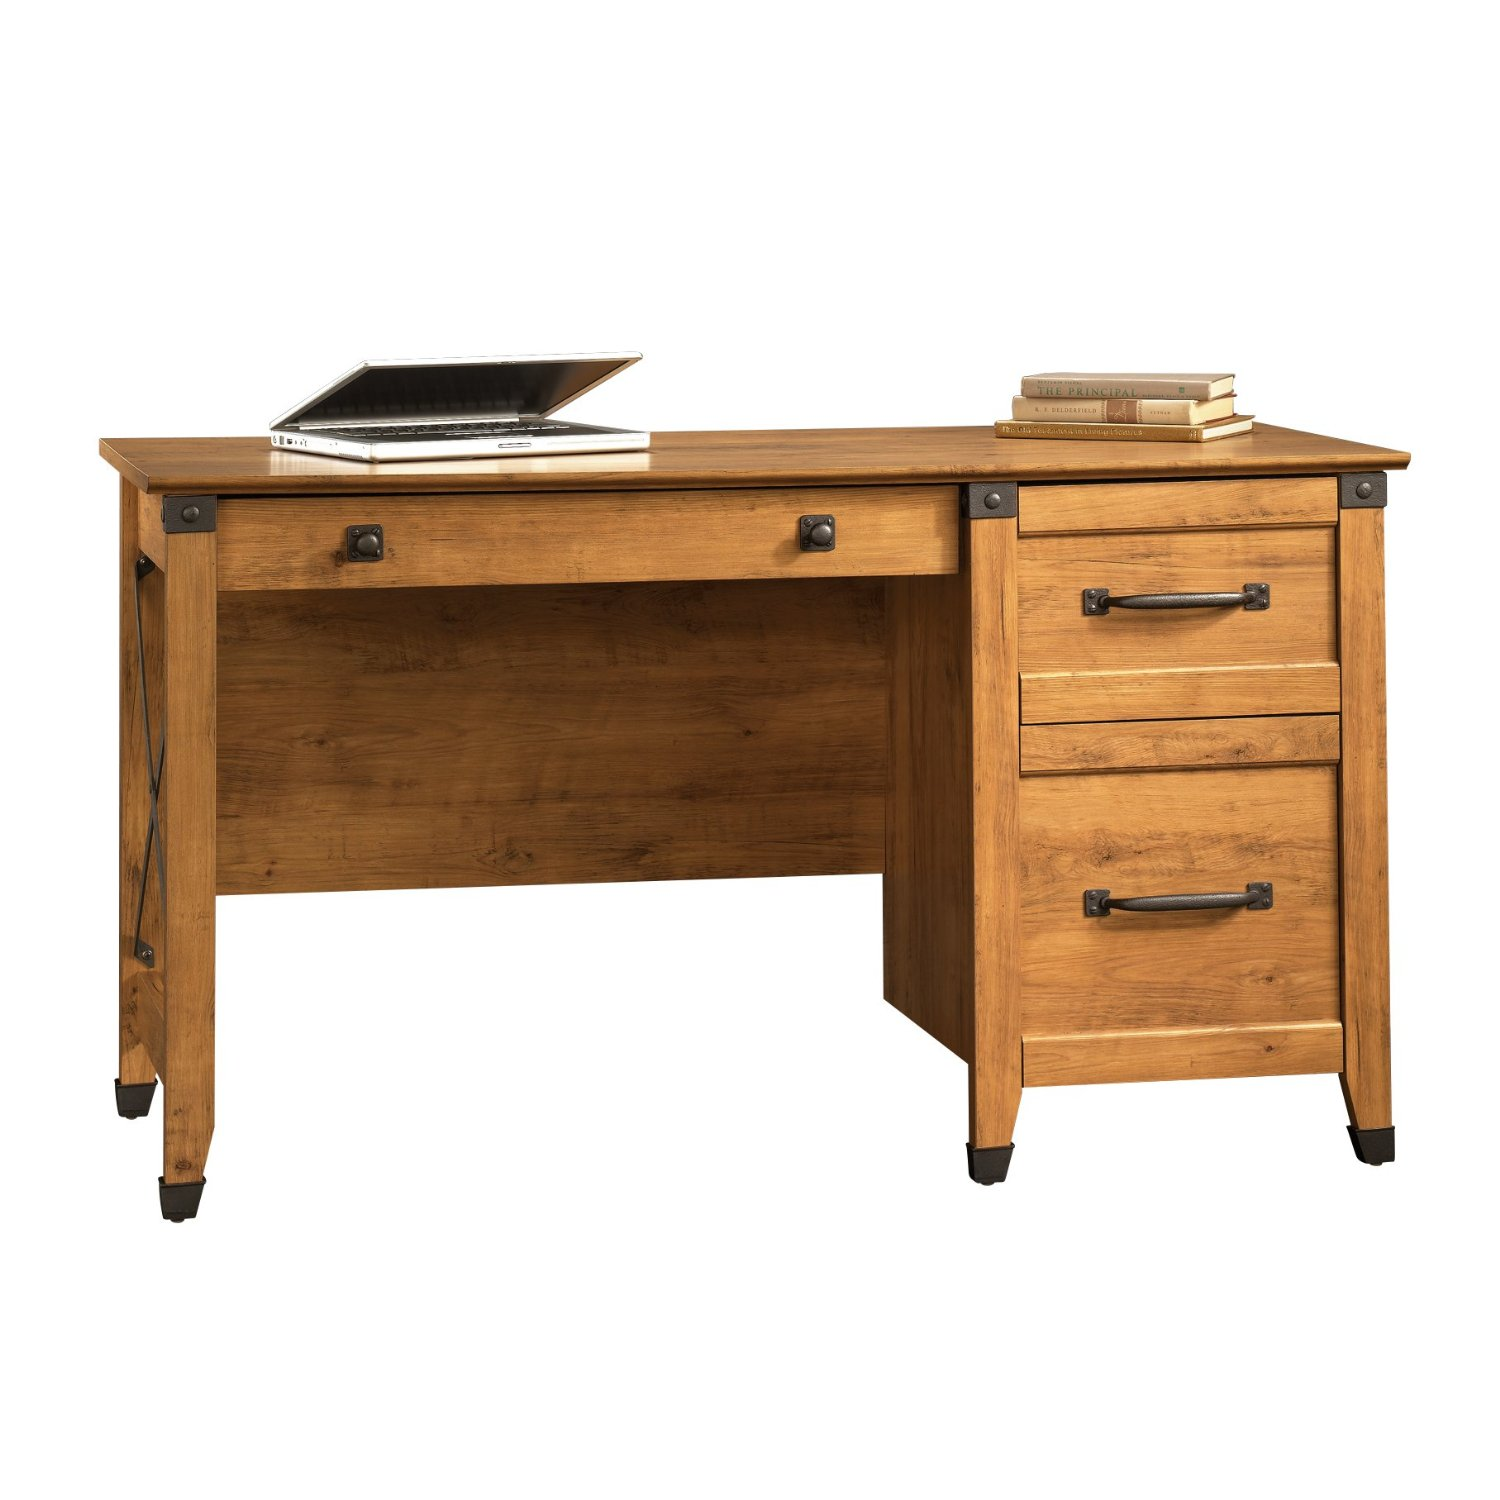 wonderful wooden desk with dark handle by sauder furniture for home office furniture ideas